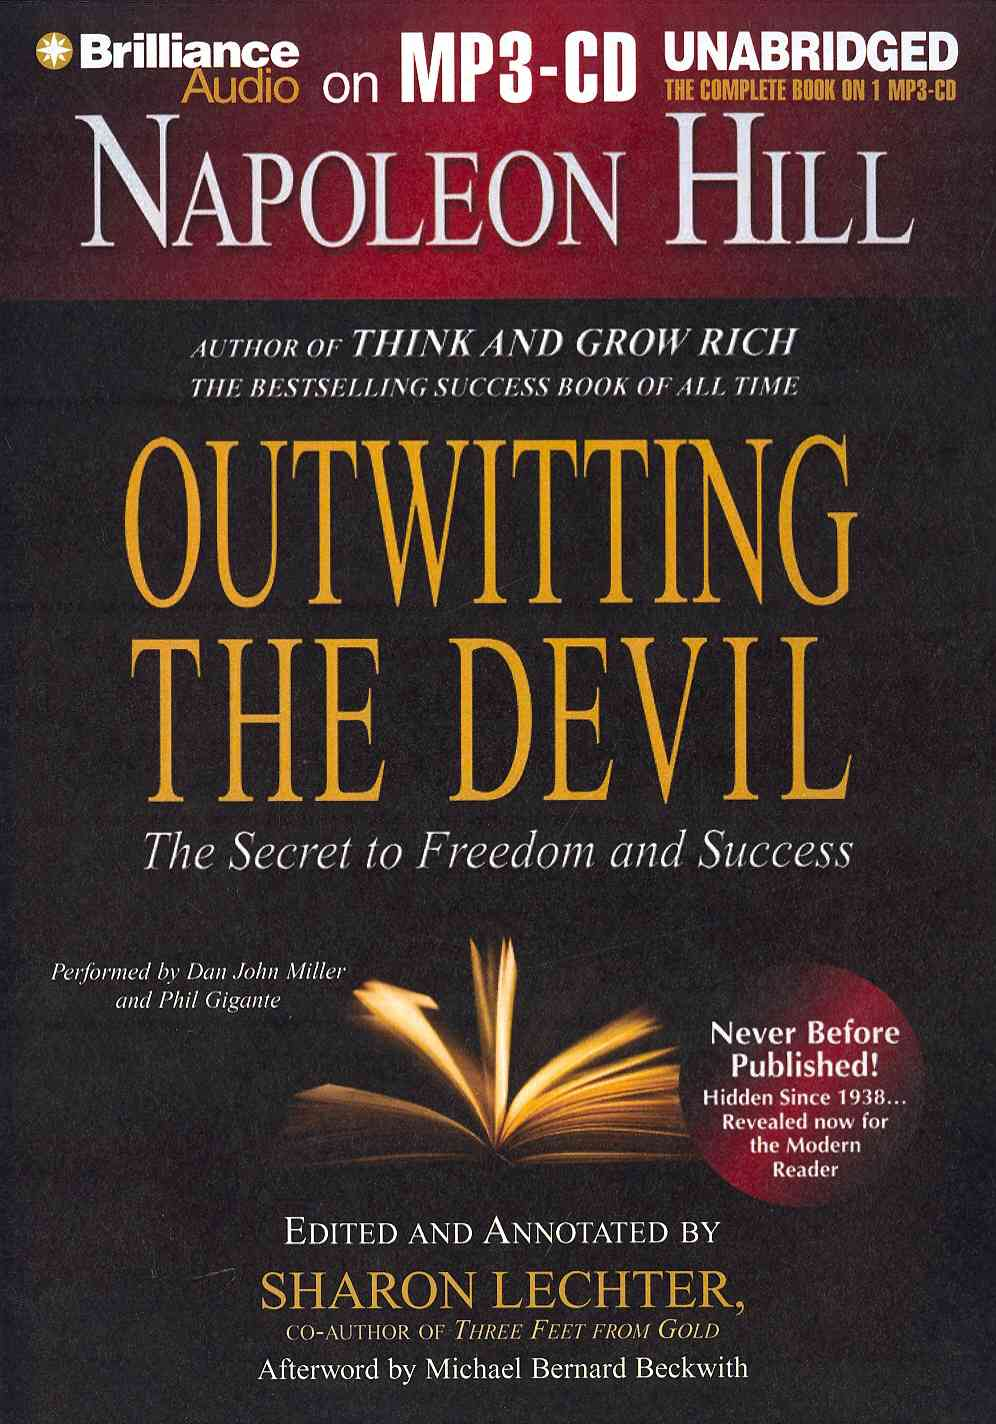 Outwitting The Devil: The Secret to Freedom and Success (CD-Audio)